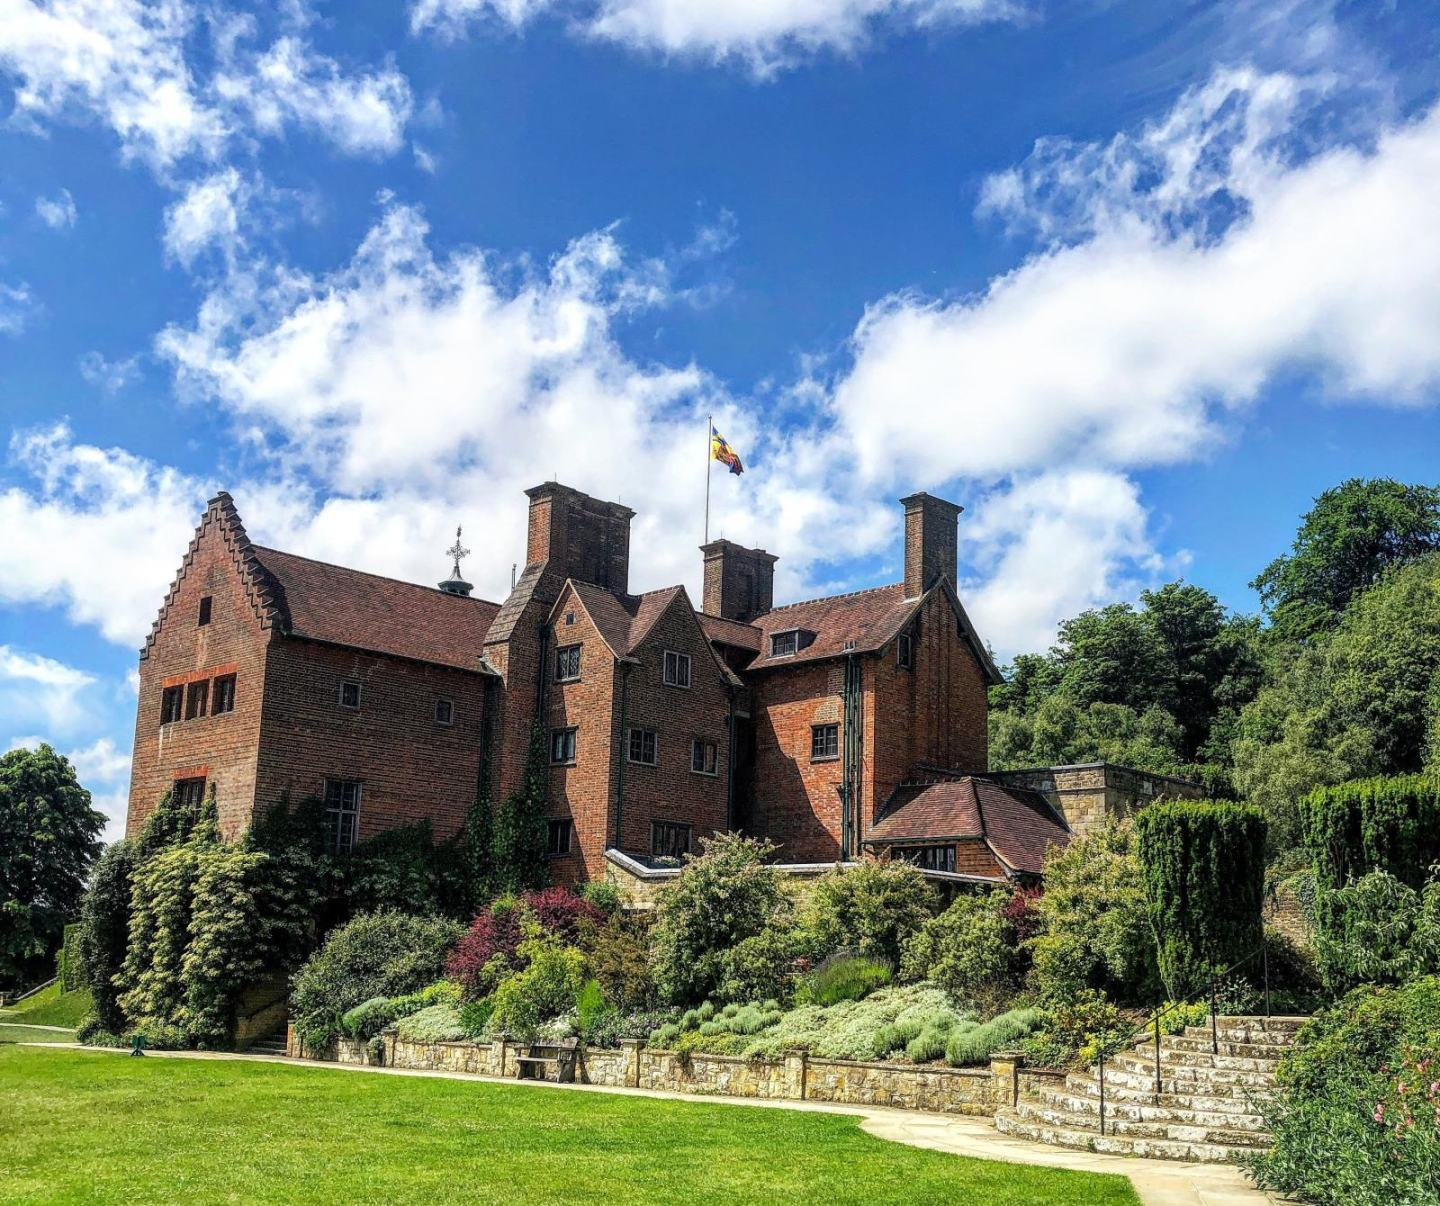 Chartwell House - Churchills country home